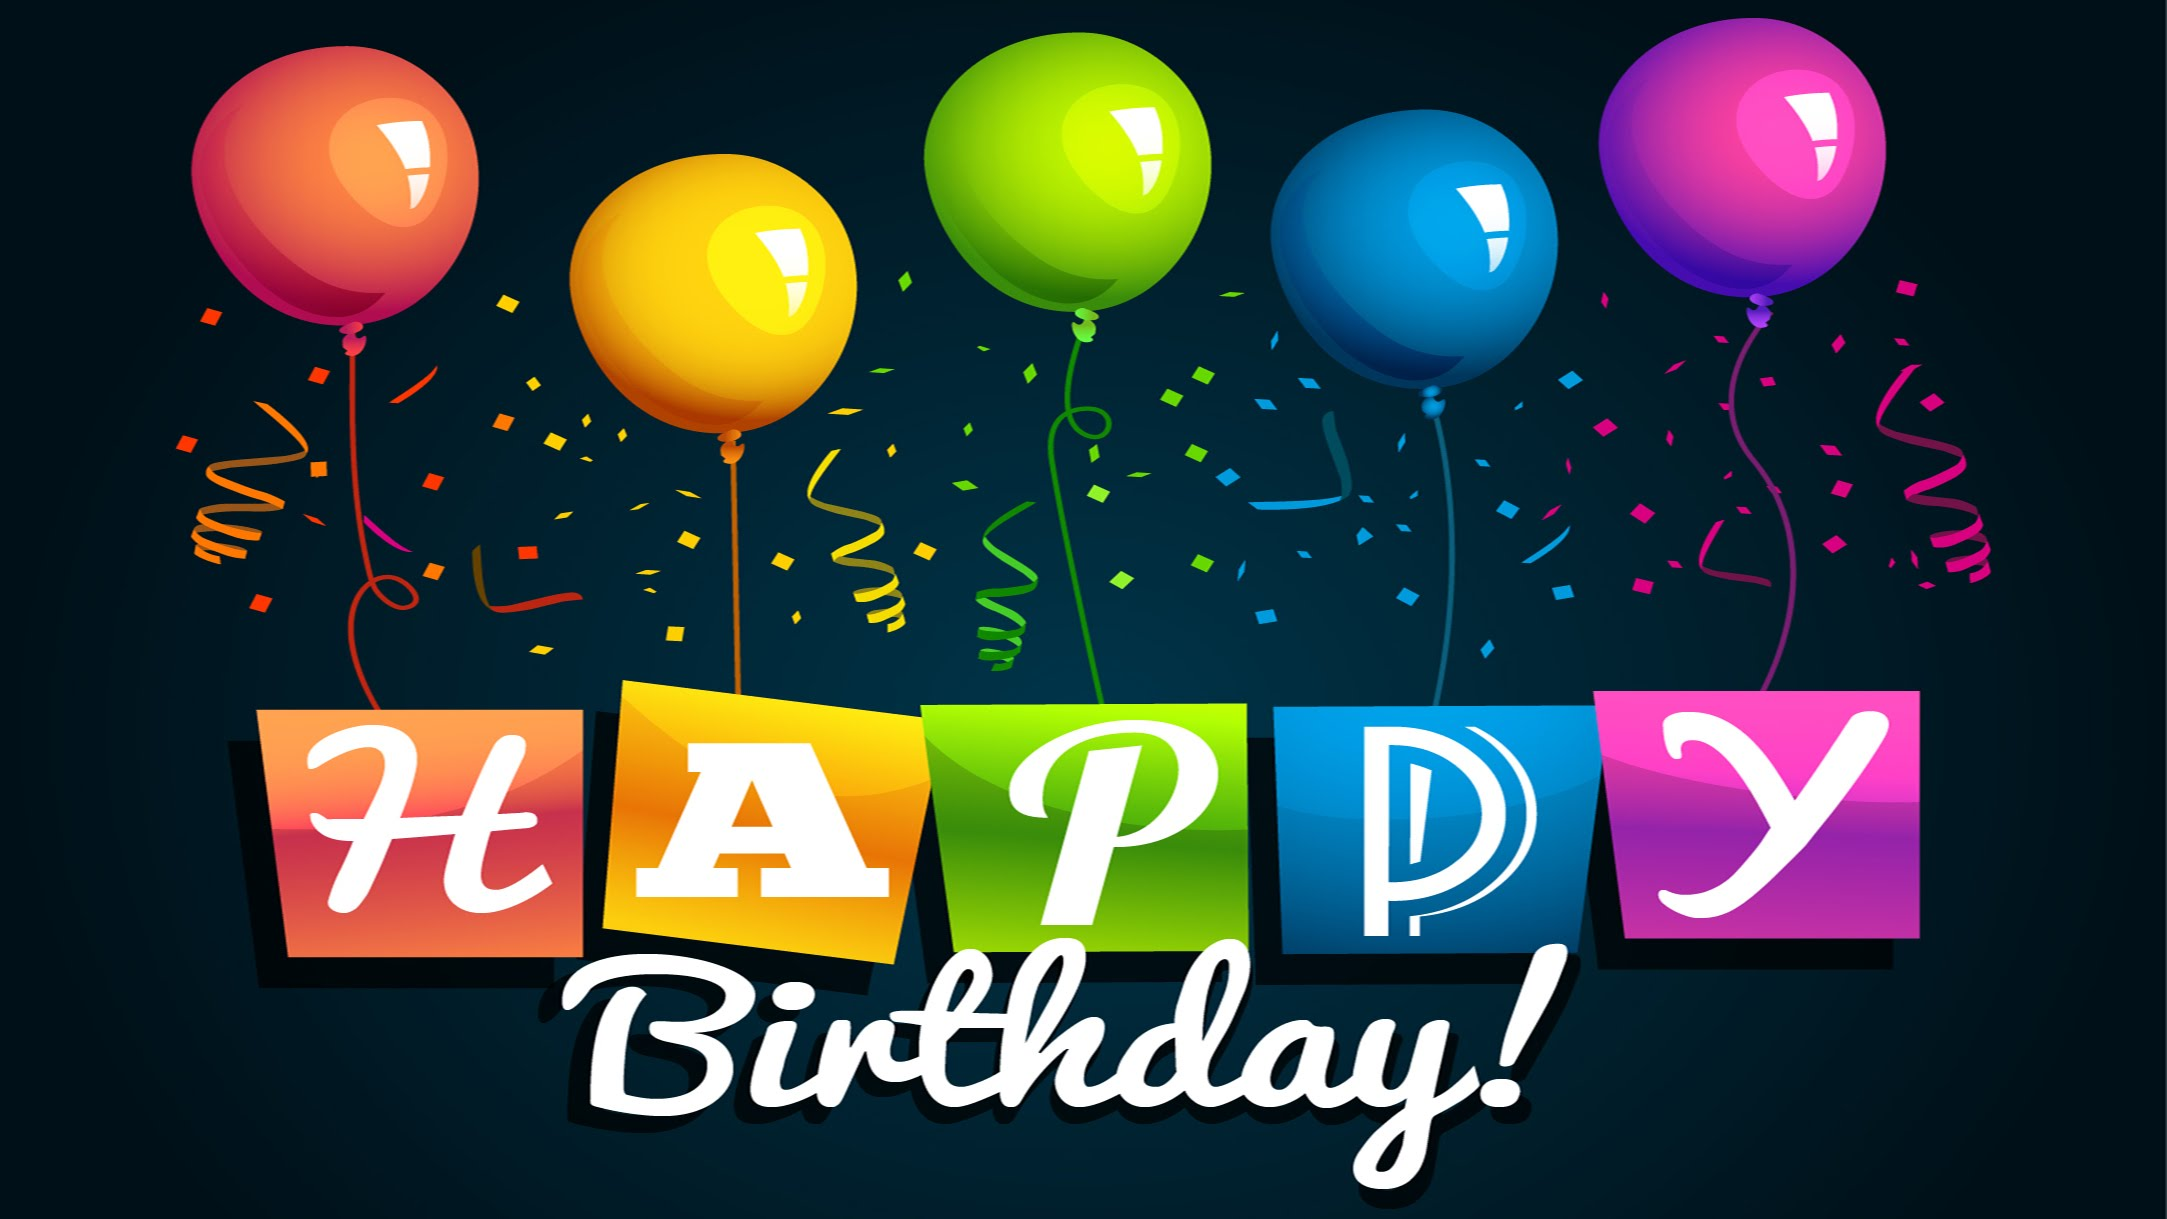 Happy birthday wallpapers pictures images - Happy birthday card wallpaper ...